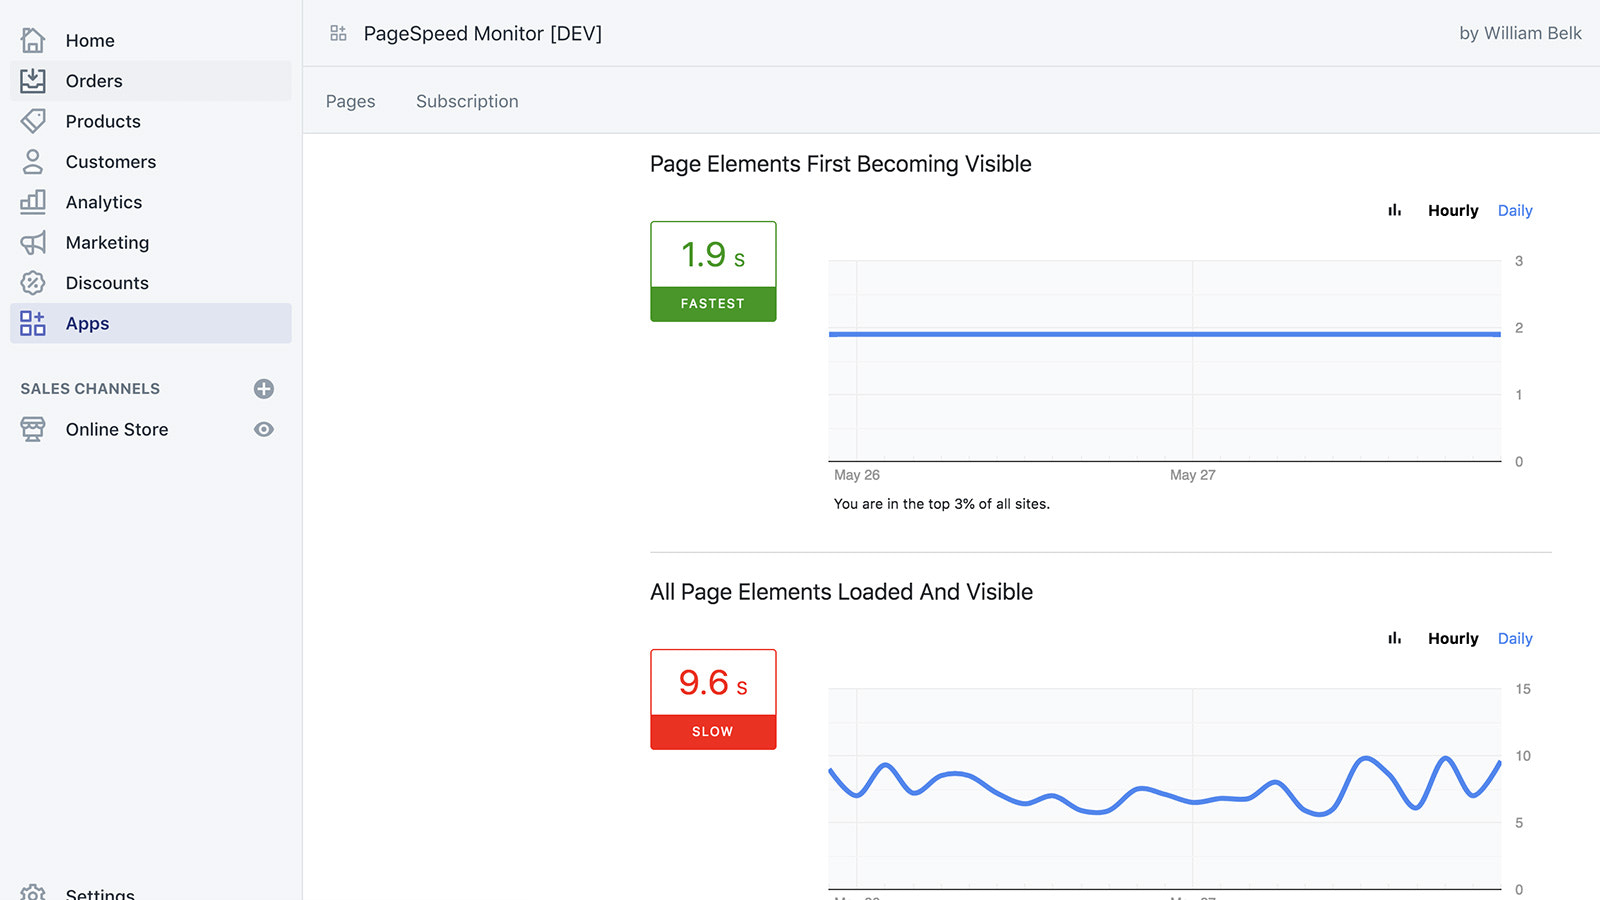 PageSpeed Monitor network requests